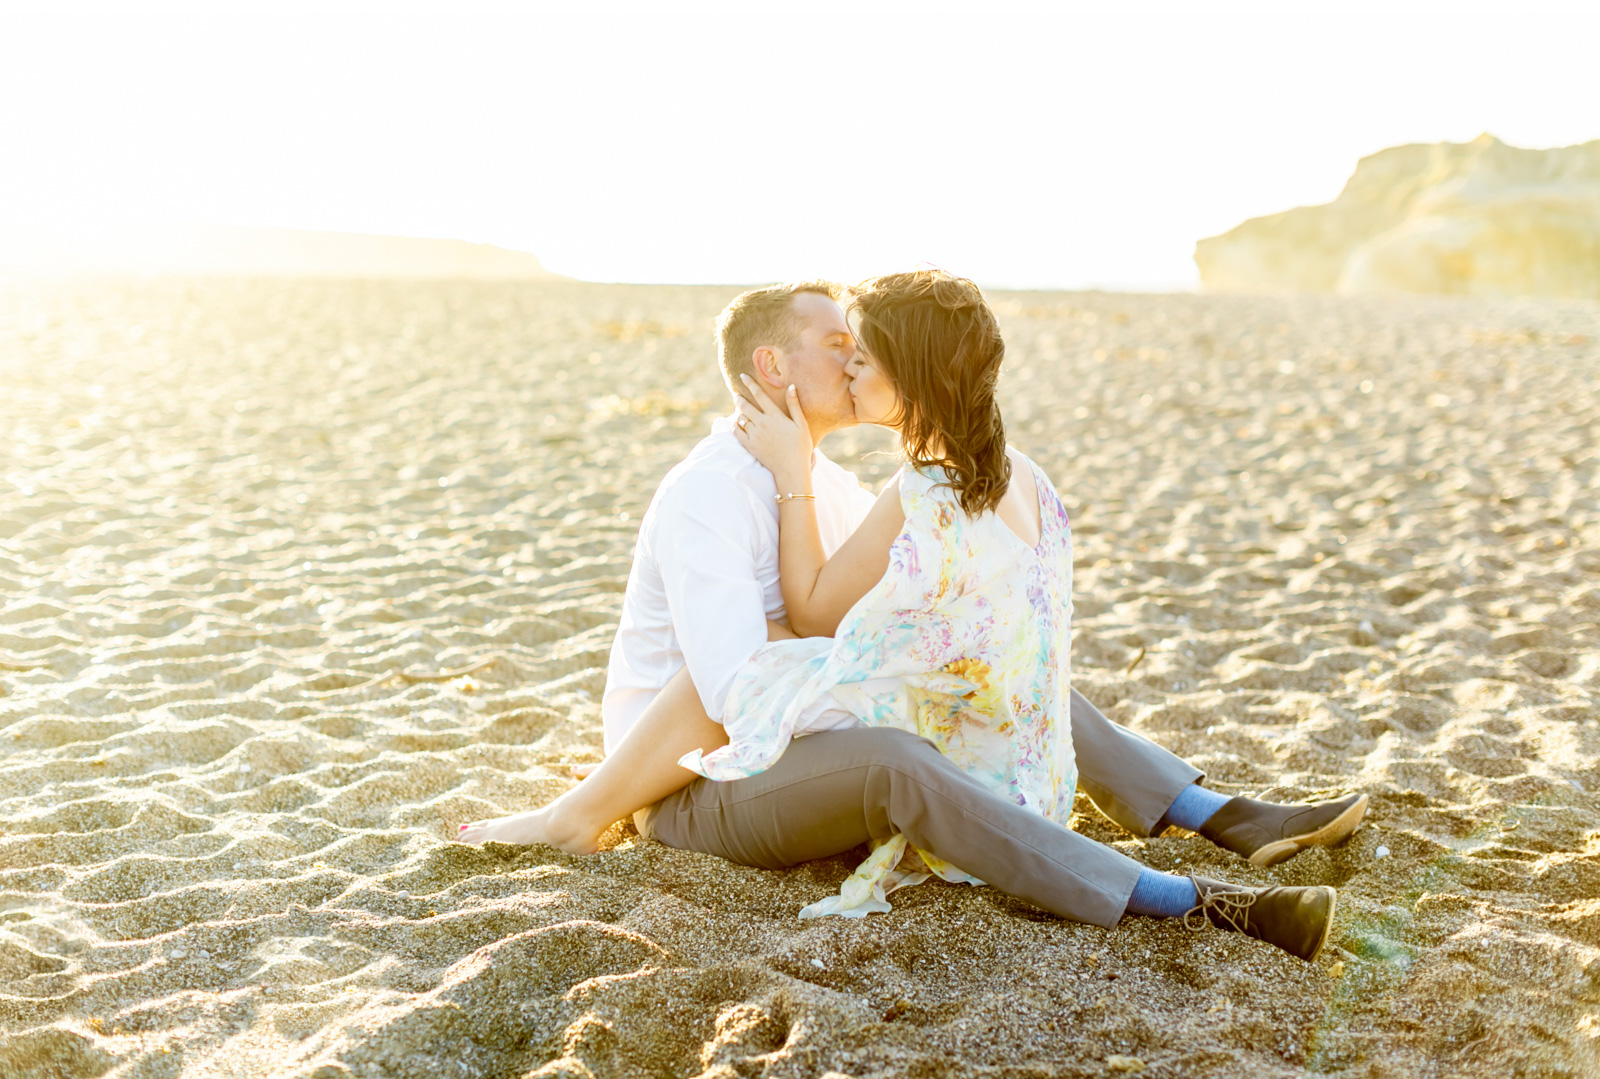 Malibu-Wedding-Photographer-Fine-Art-Photography-Professional-Wedding-Photography-Ocean-Engagement-Natalie-Schutt-Photography_10.jpg